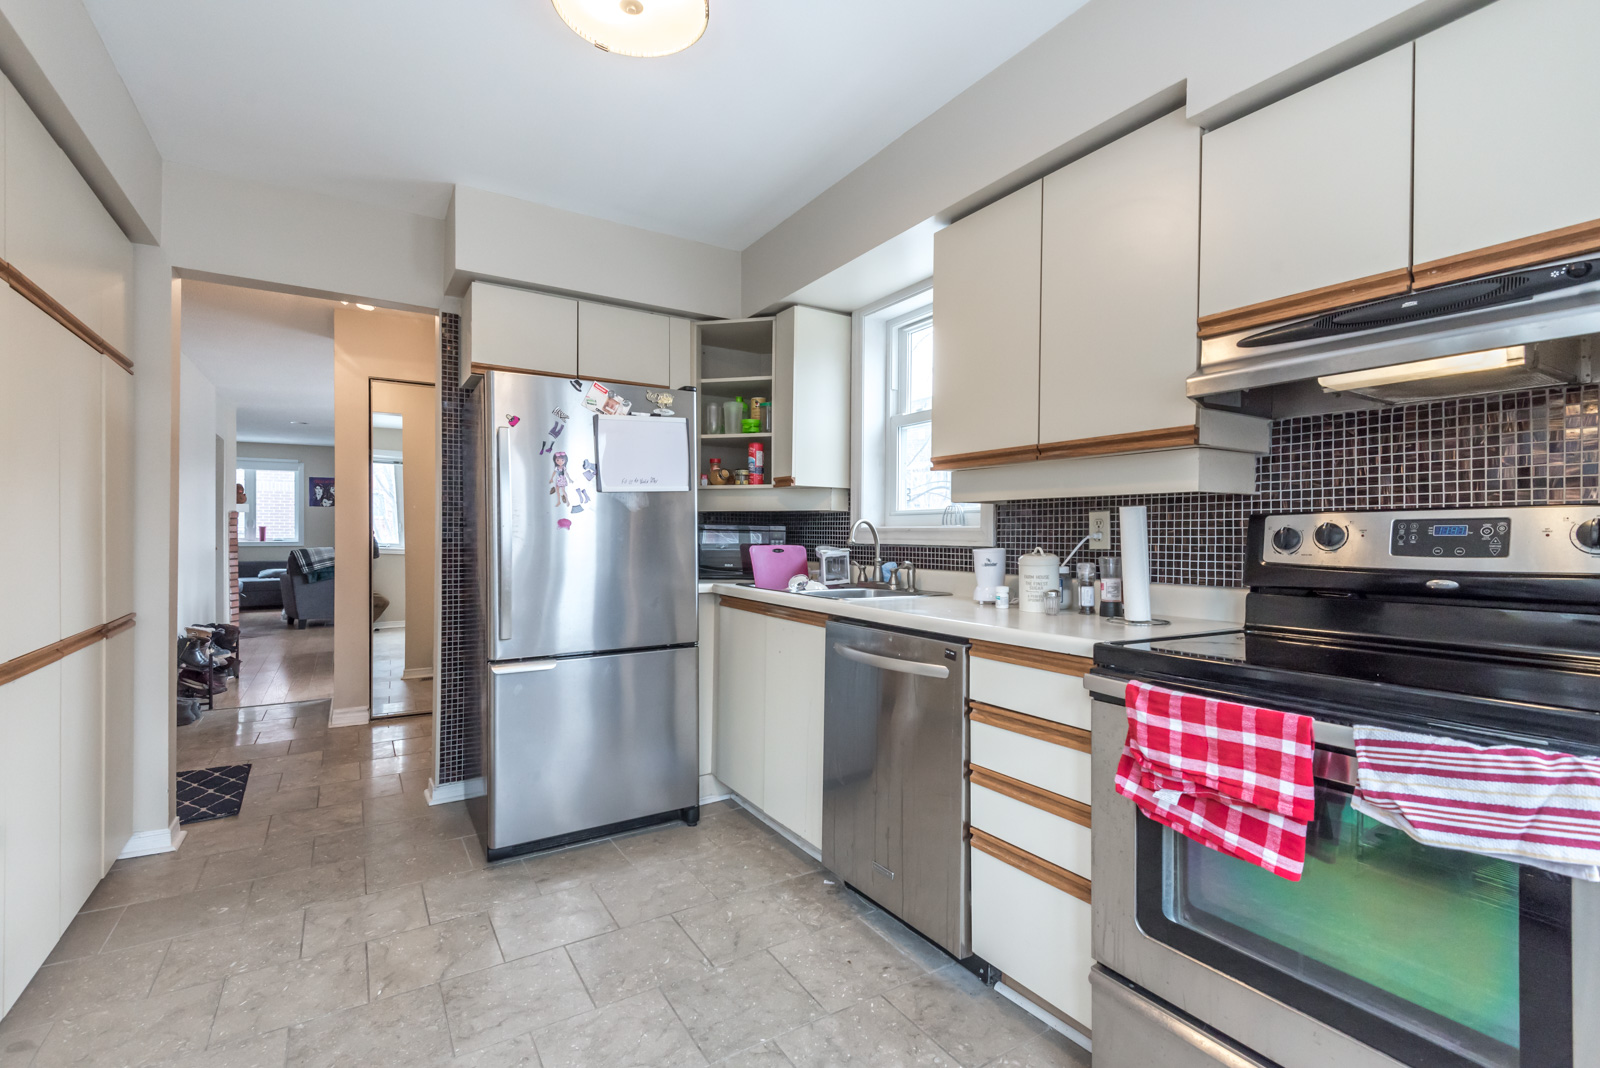 Multiple cabinets and drawers provide plenty of space for plates, utensils and smaller appliances.